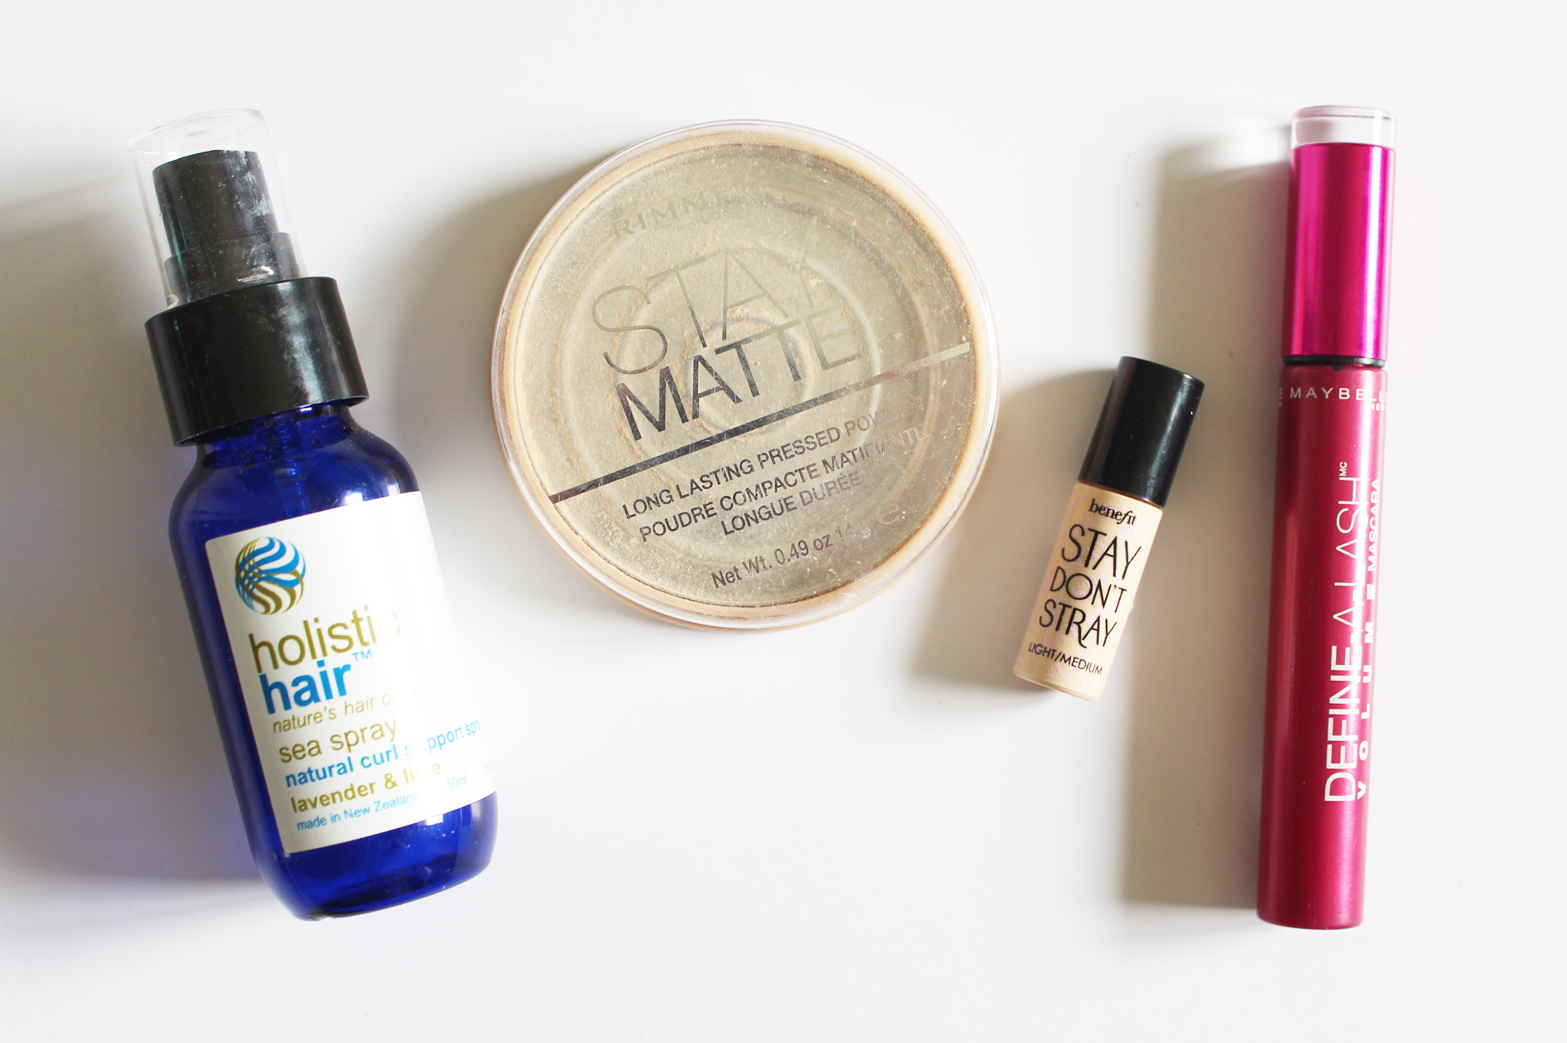 EMPTIES | December '15 - Rimmel, Moreish, Holistic Hair, Benefit, Maybelline, The Body Shop, Garnier - CassandraMyee